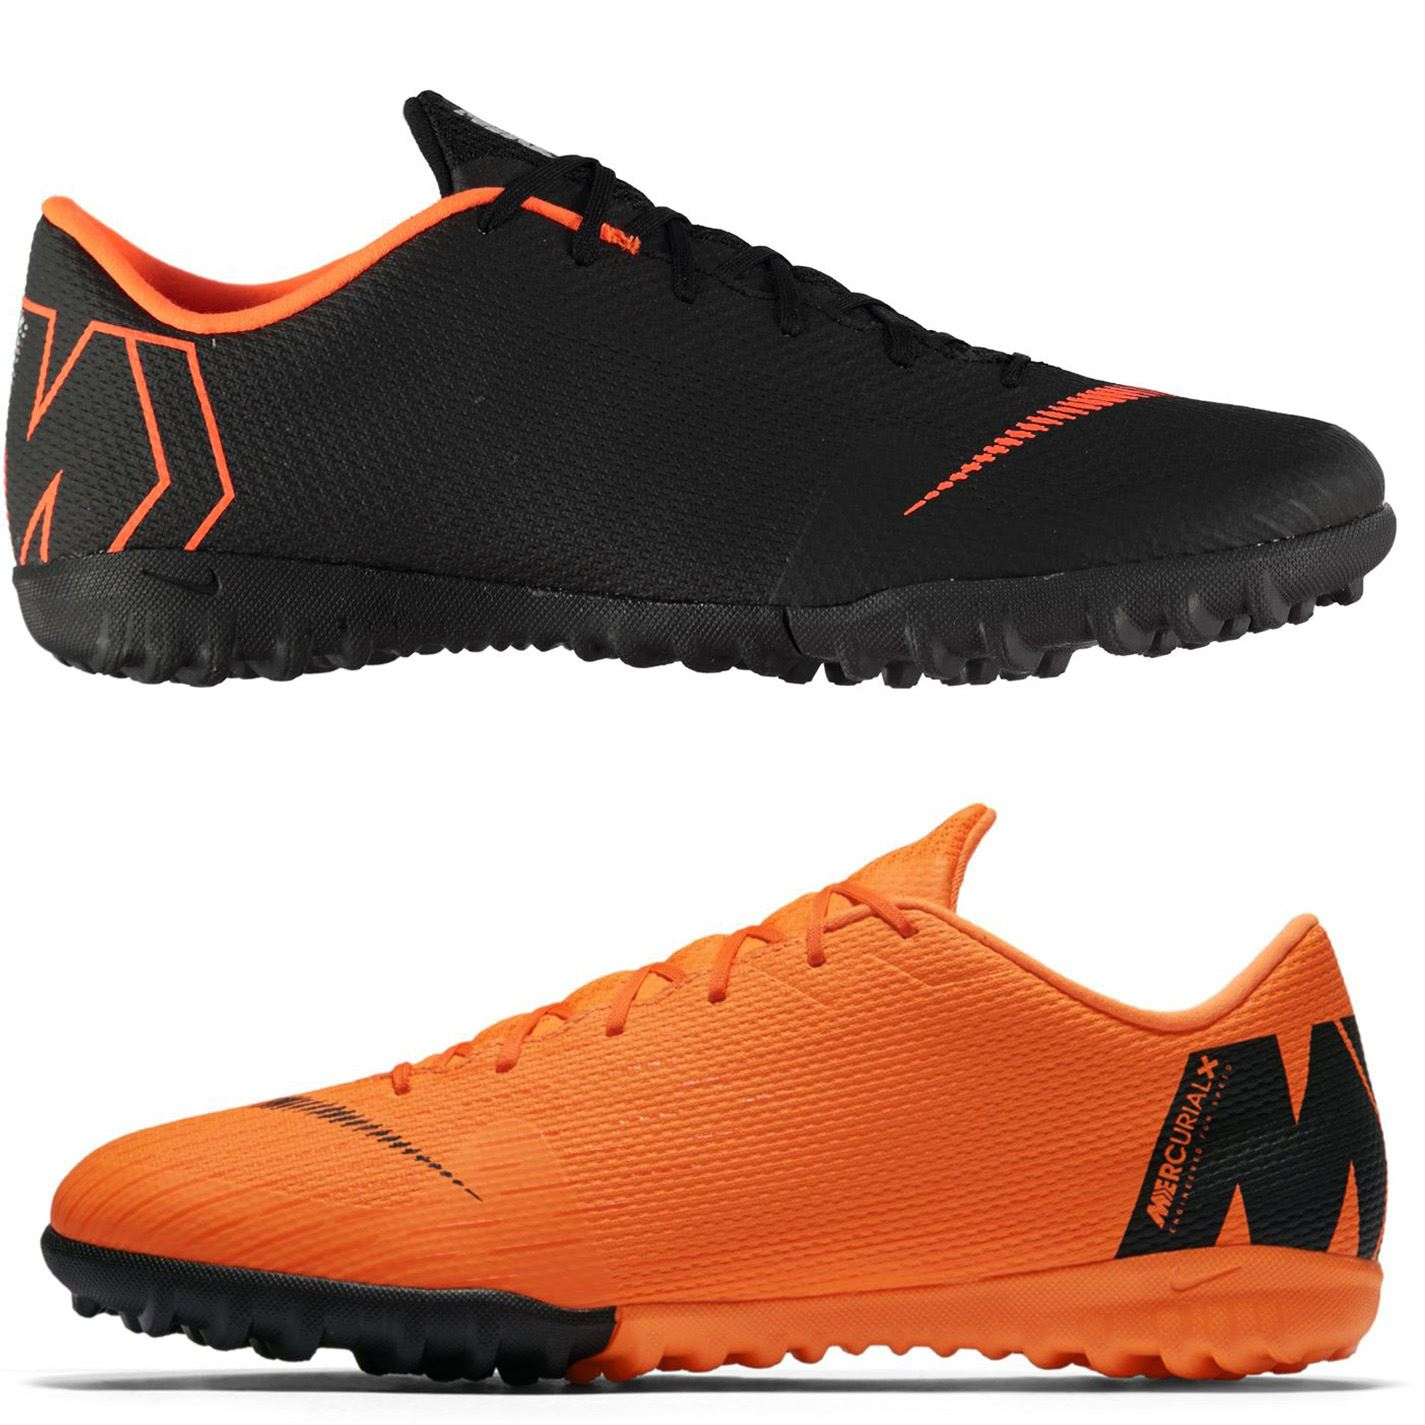 3ee2eb246130 ... Nike Mercurial Vapor Academy Astro Turf Football Trainers Mens Soccer  Shoes ...